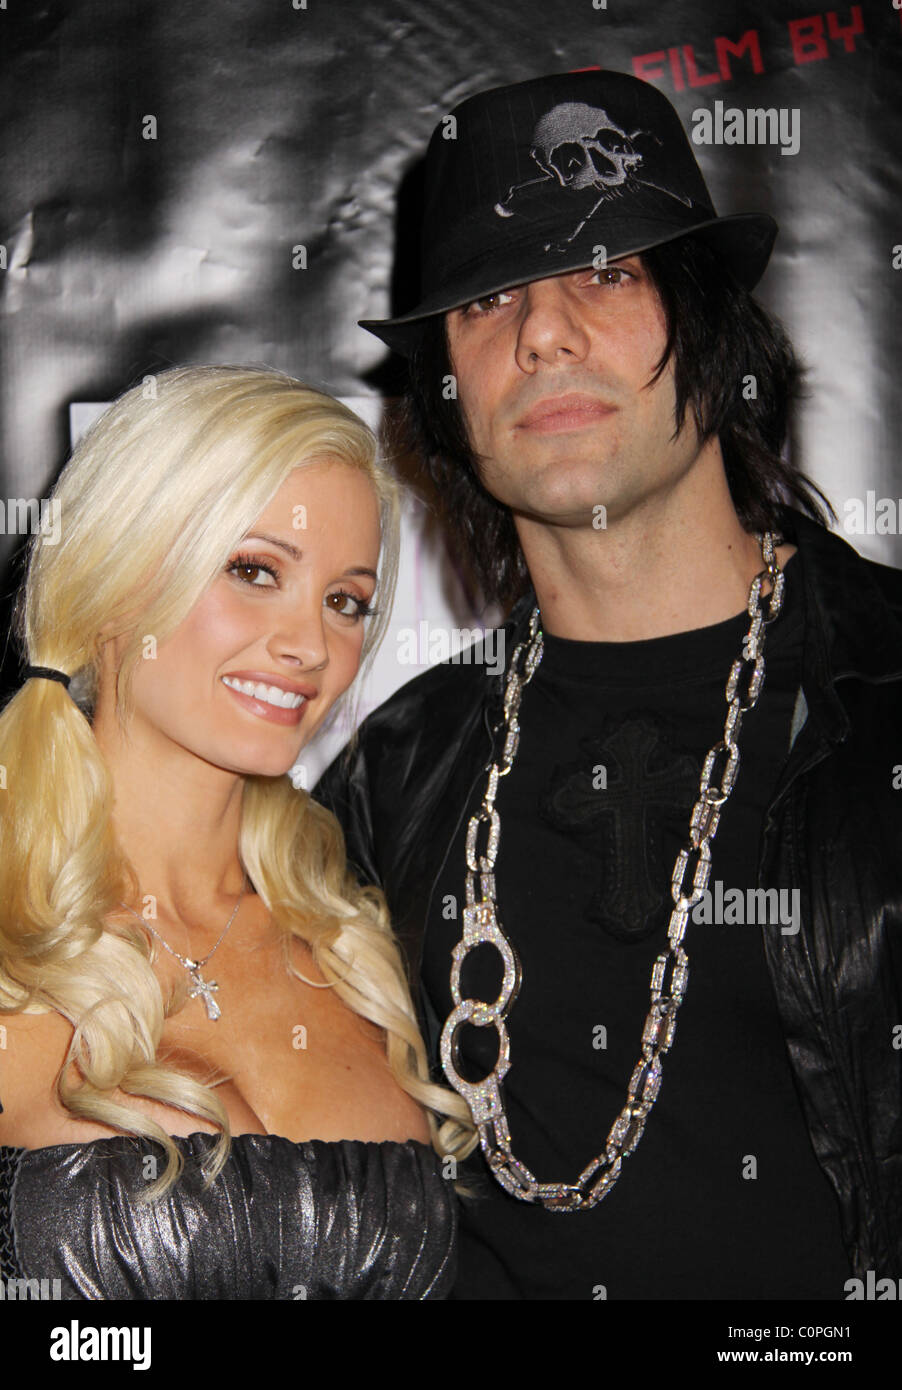 holly madison and criss angel lionsgate premiere of 'repo! the stock